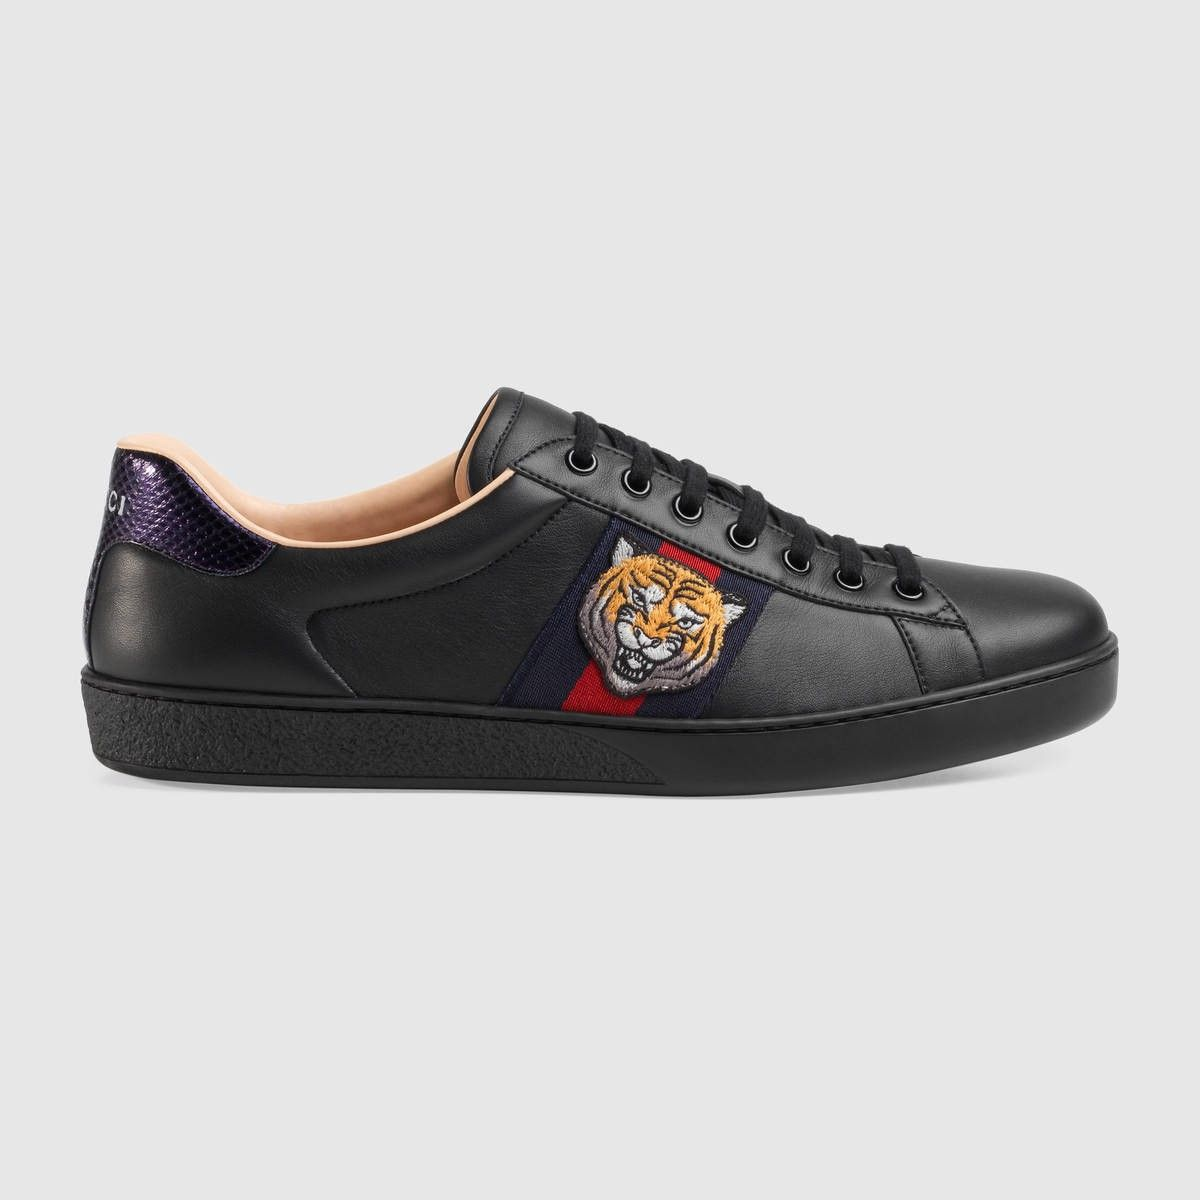 40af66d1e97 GUCCI Online Exclusive Ace Sneaker - Black Leather.  gucci  shoes  all